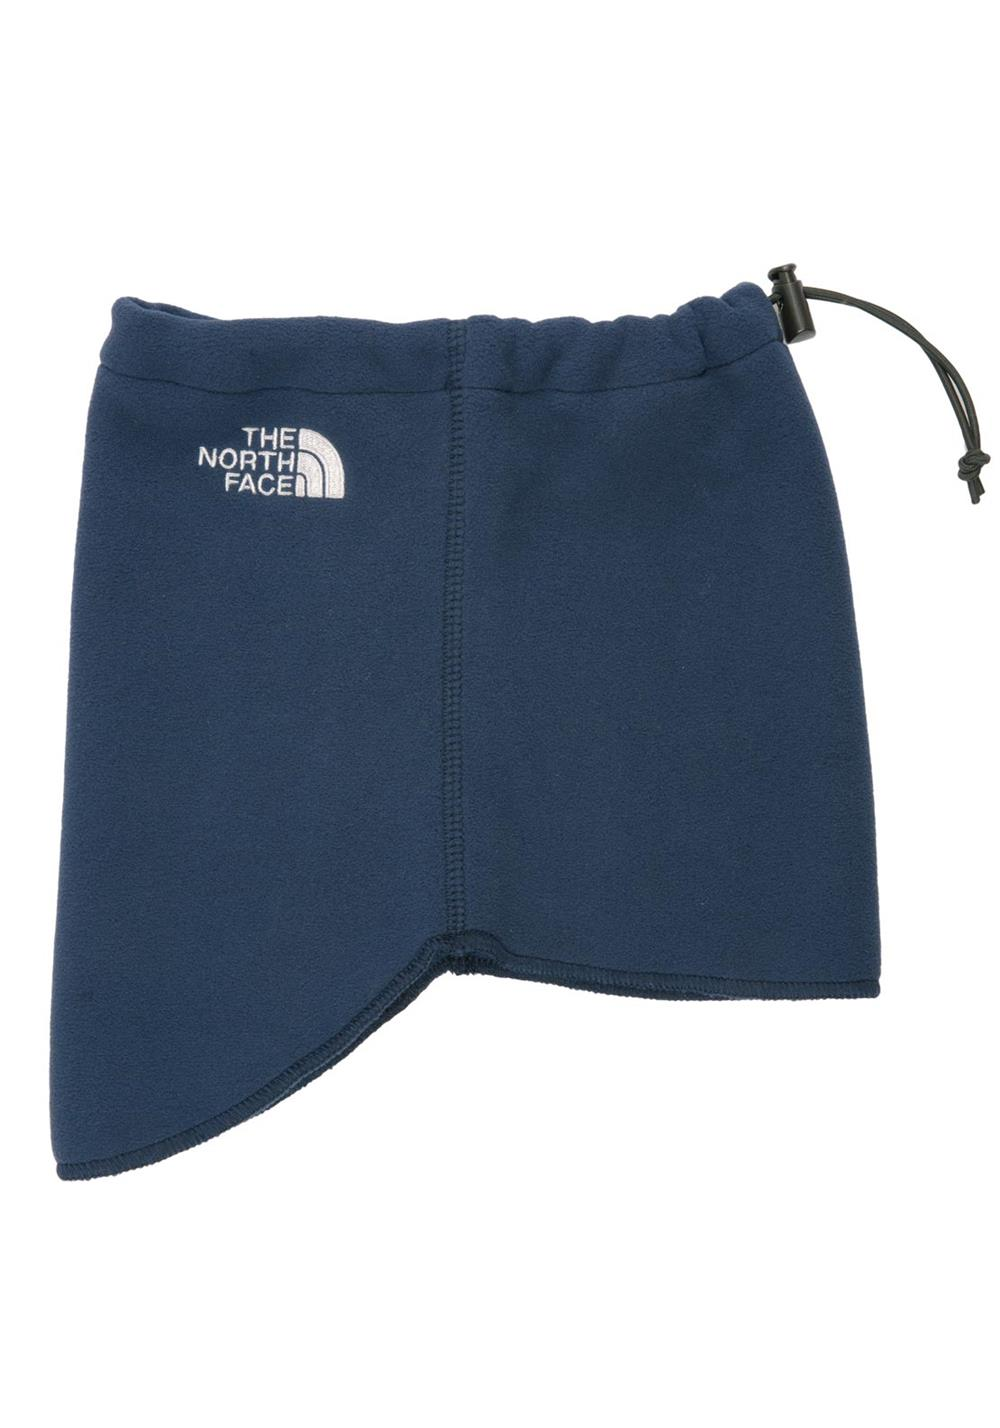 The North Face Neck Gaiter, Navy